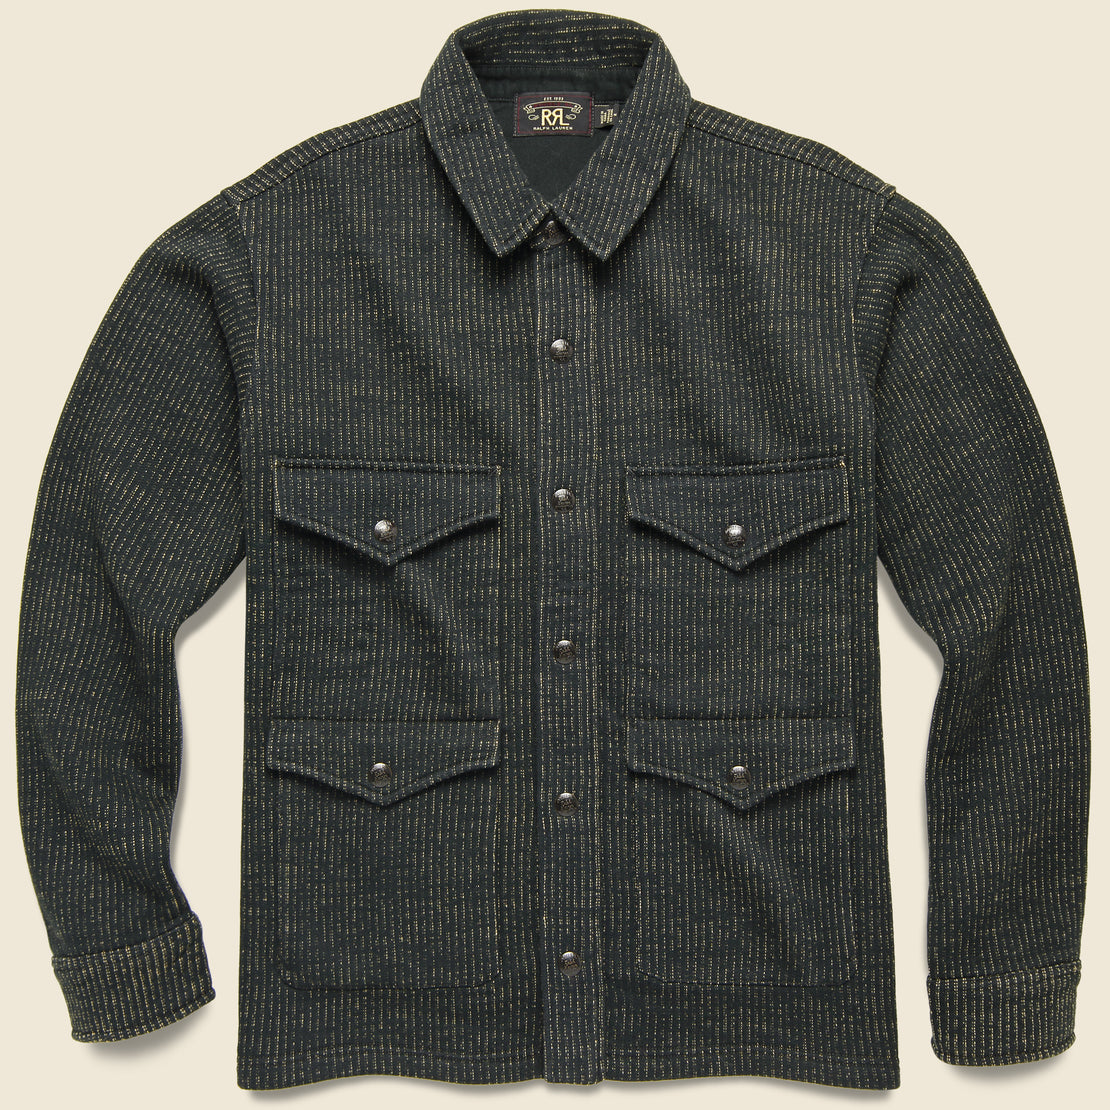 RRL Fleece Shirt Jacket - Browns Beach